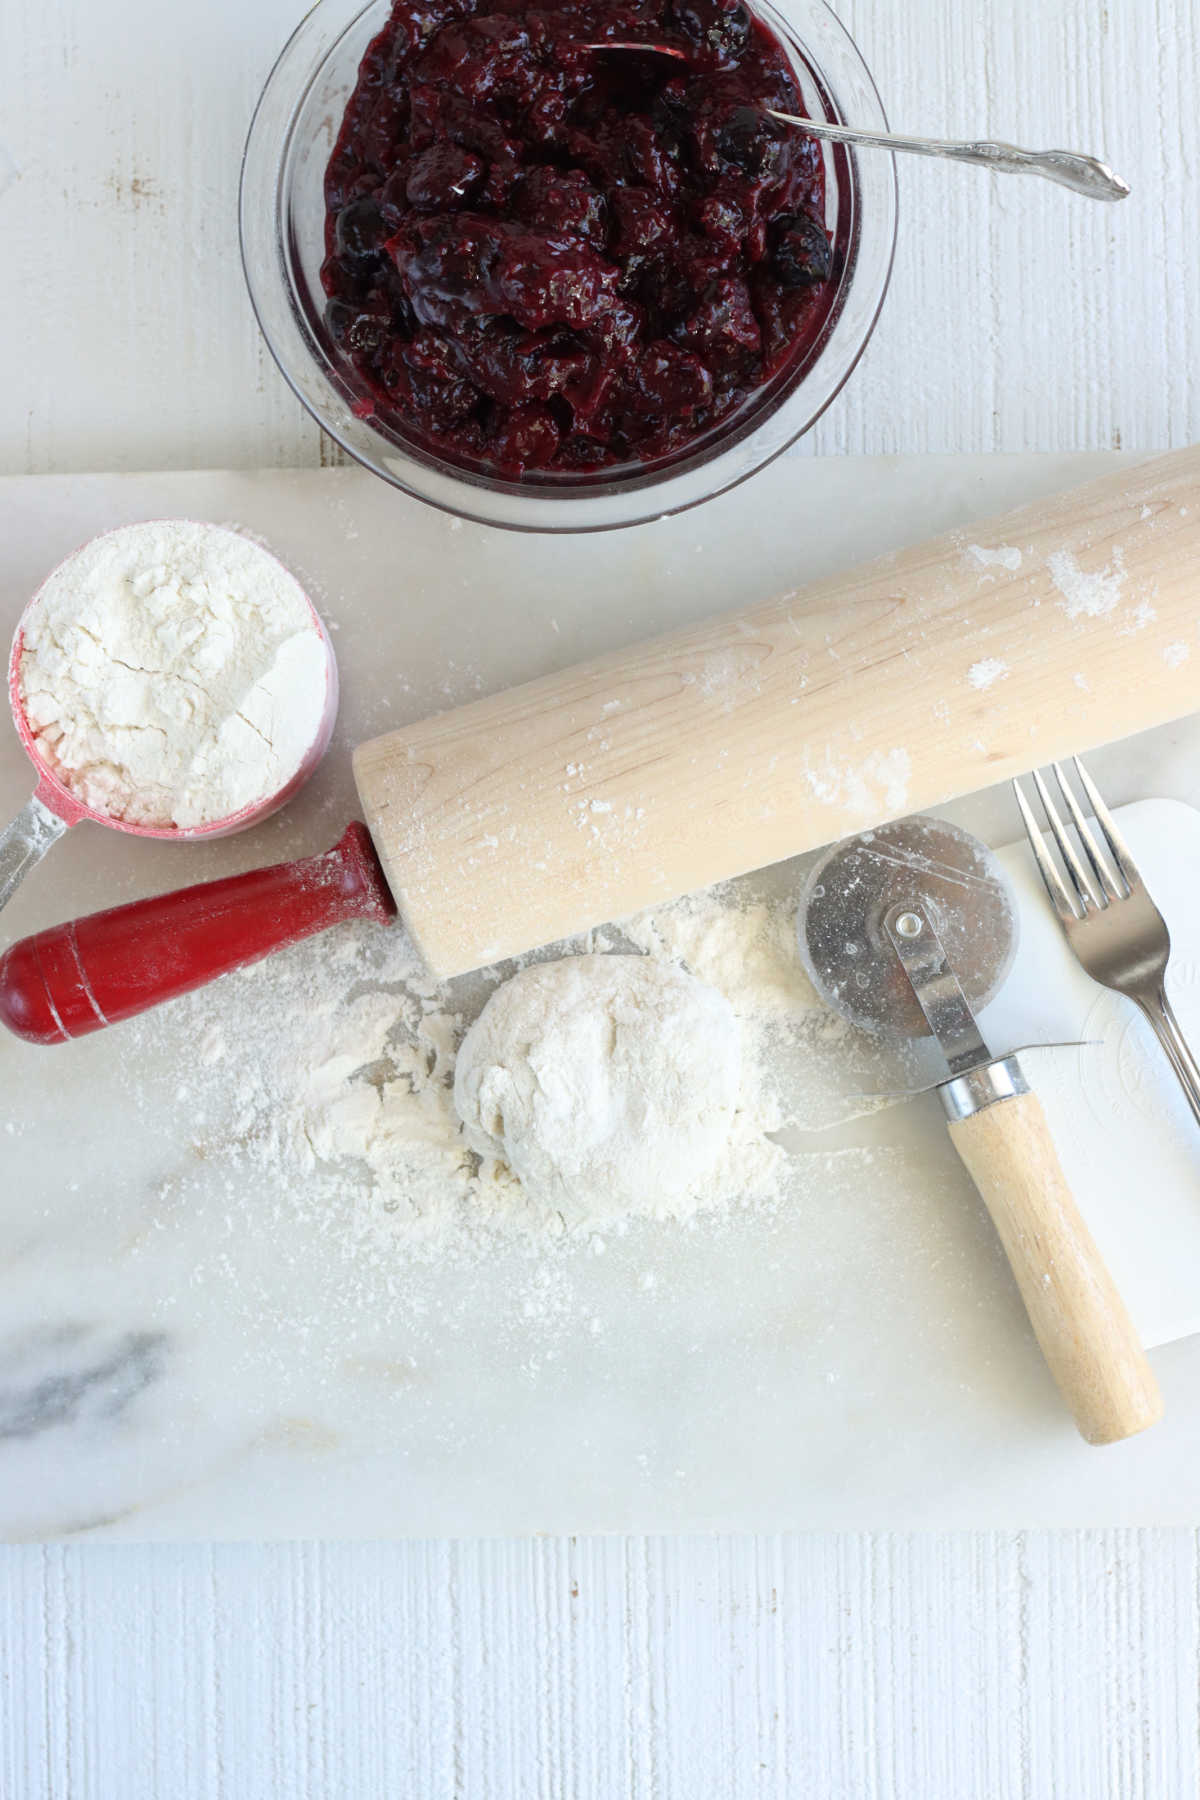 Ingredients for hand pies on white marble, cherry pie filling, pie crust and tools.